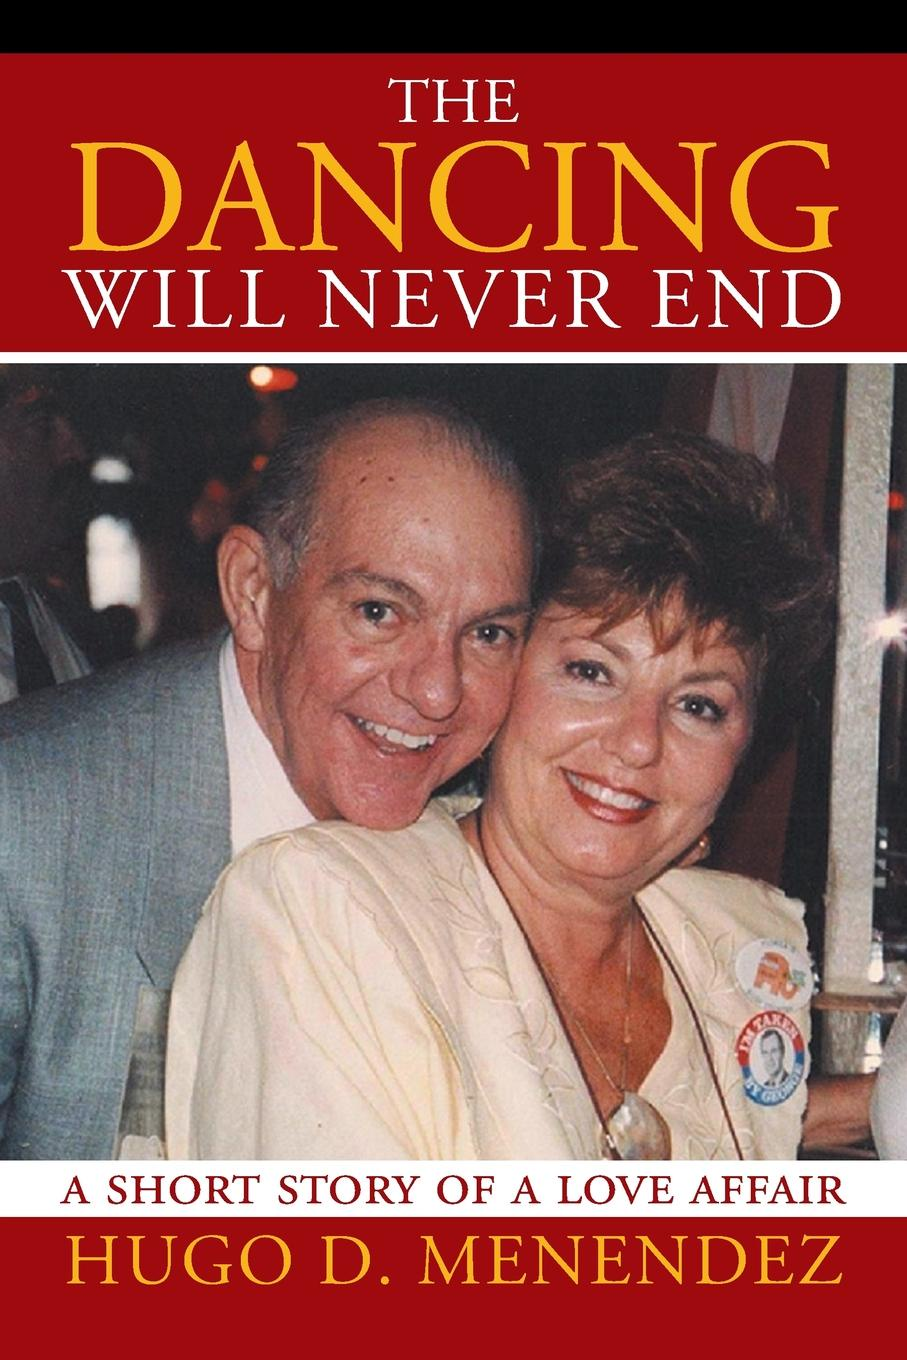 Hugo D Menendez The Dancing Will Never End A Short Story of a Love Affair